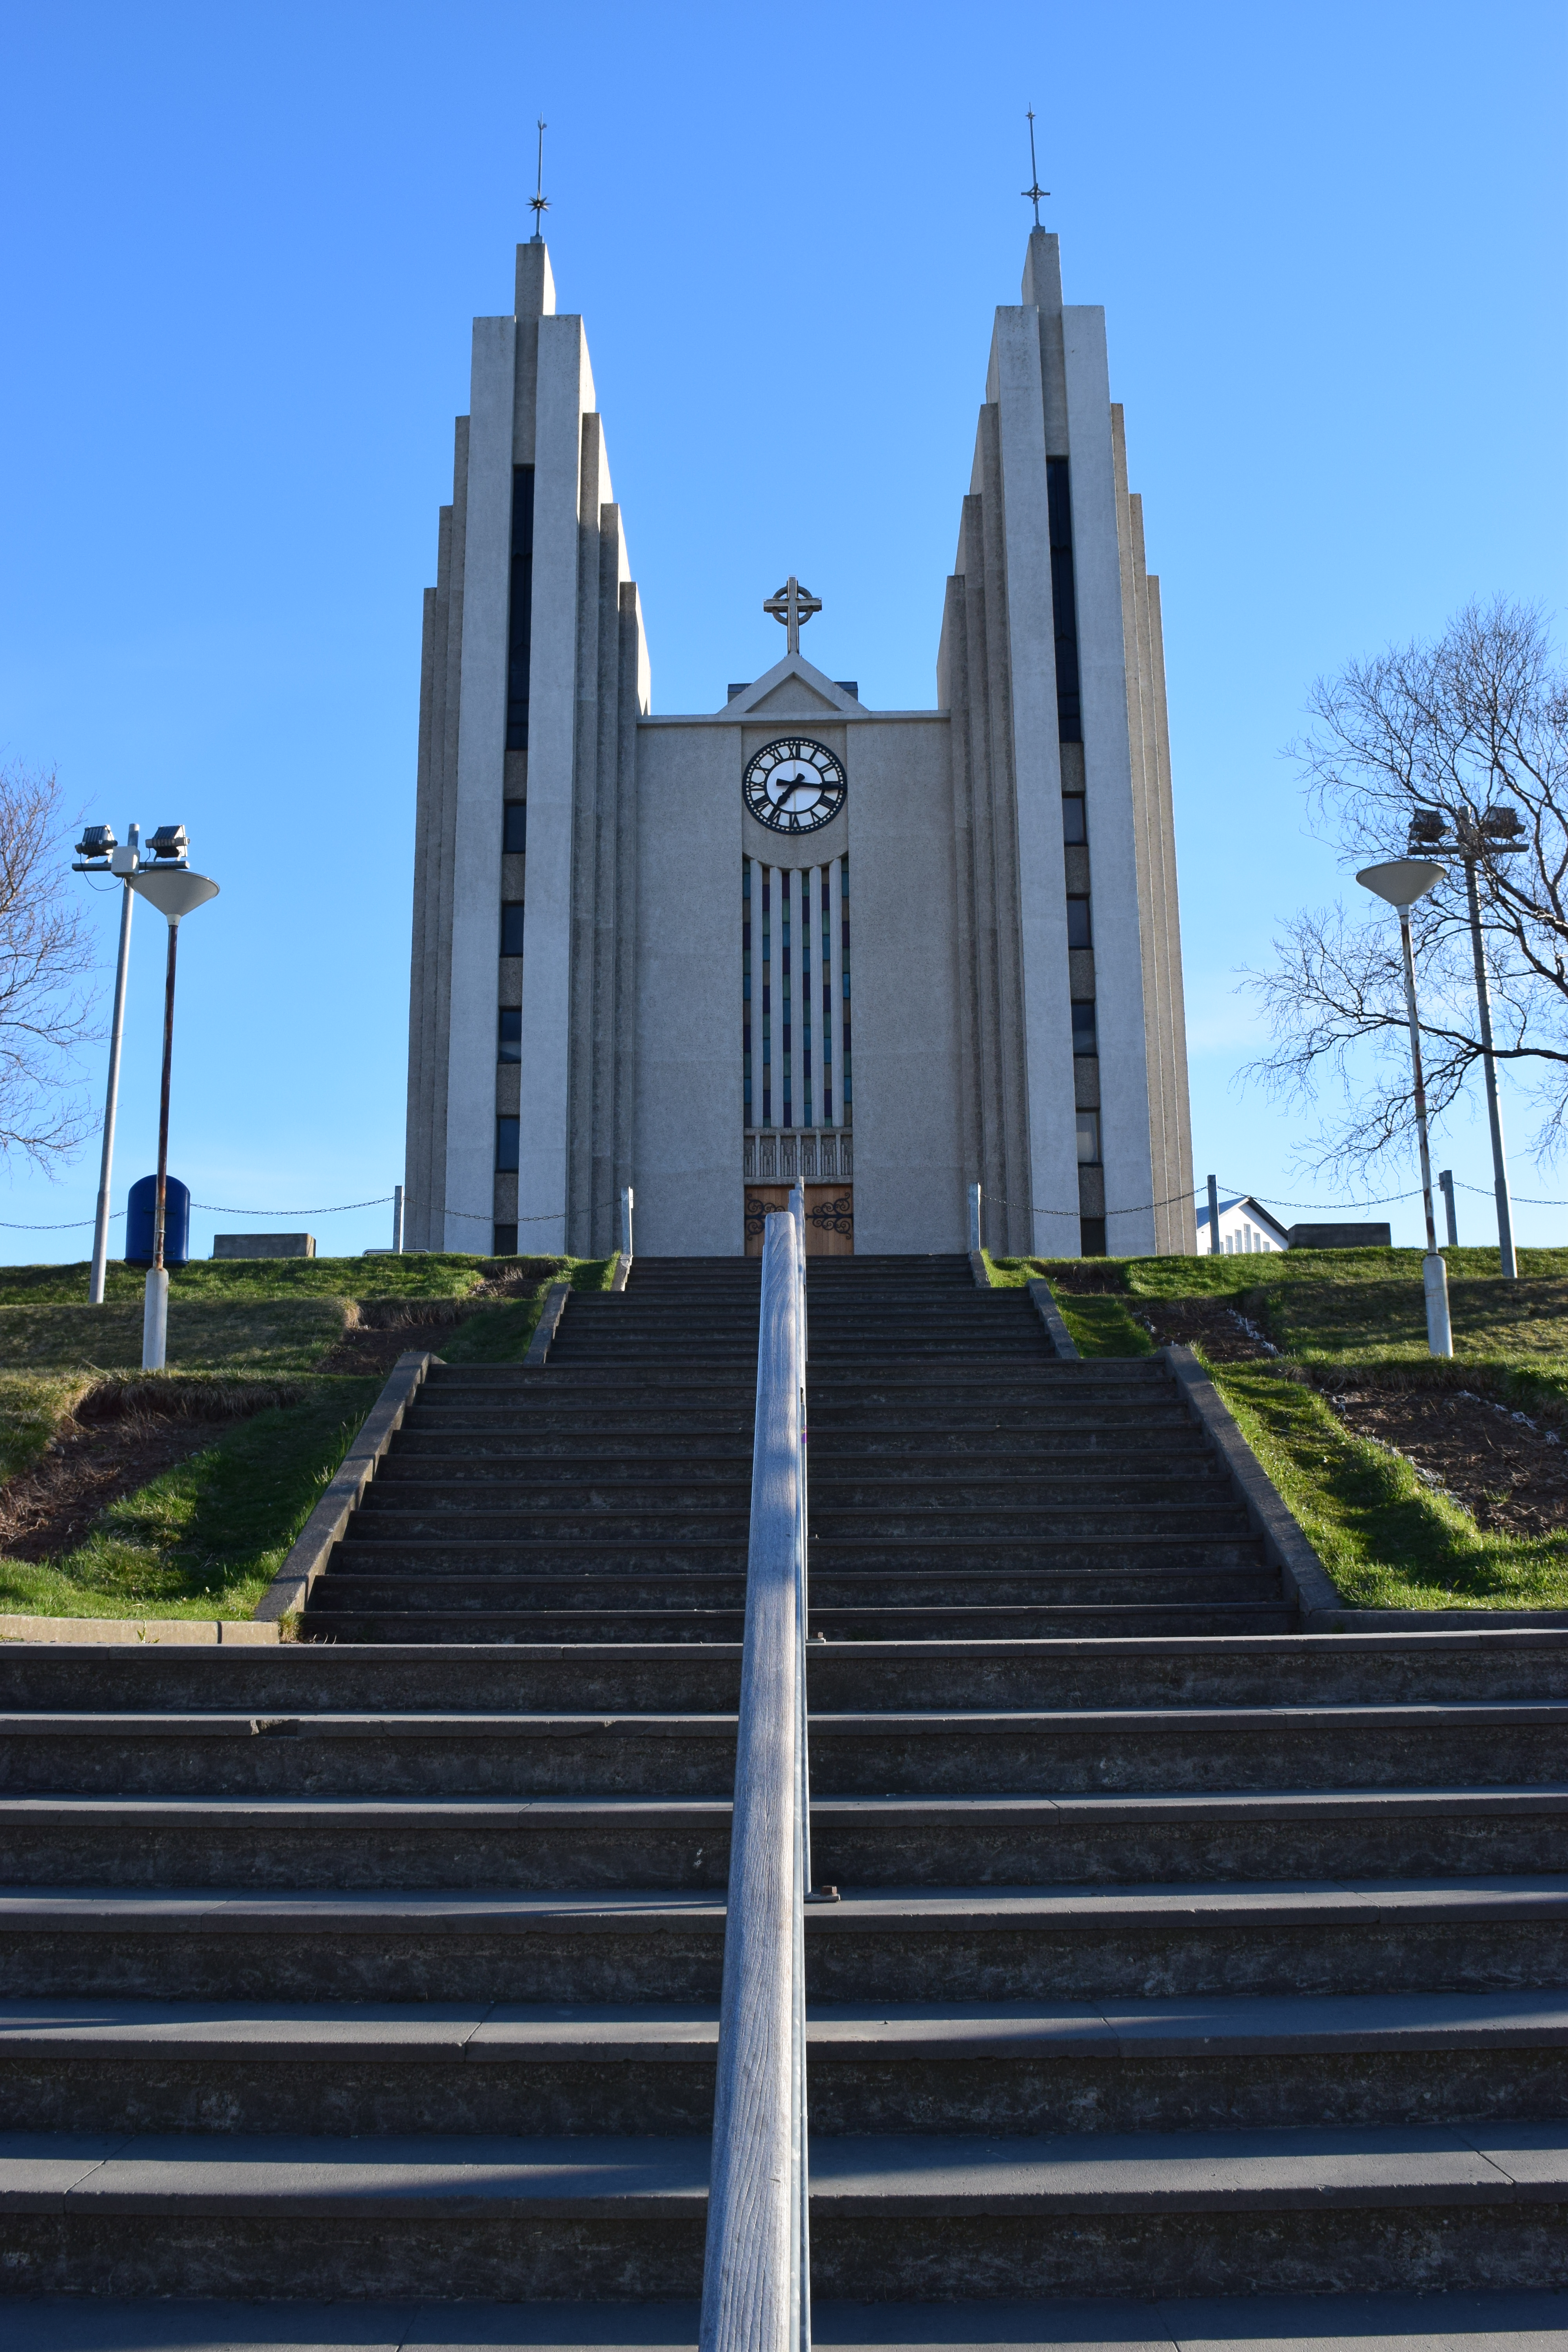 Akureyri church with staircase leading to the front of the church